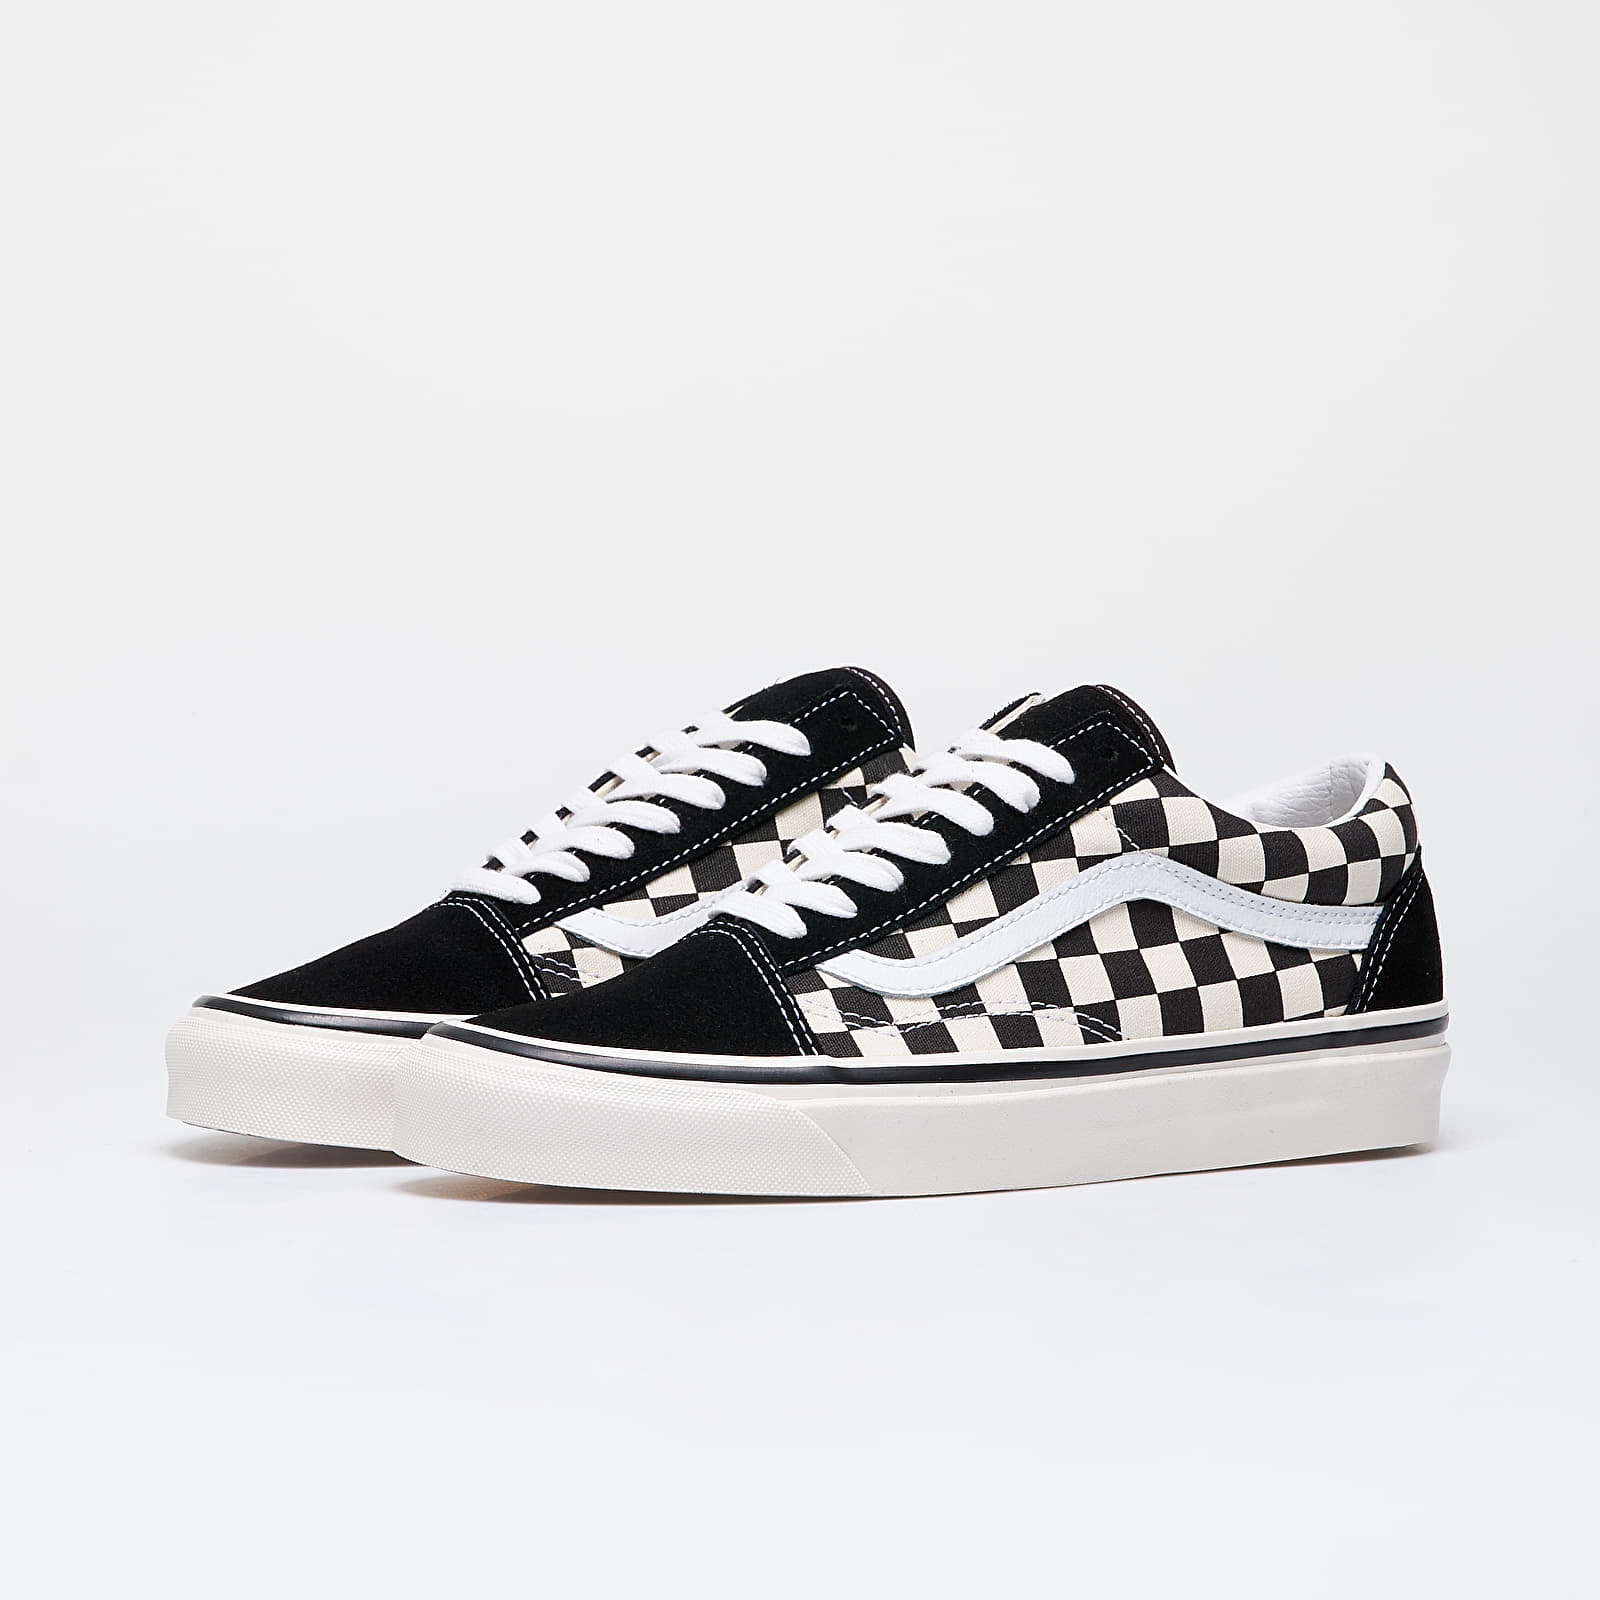 Vans Old Skool 36 DX (Anaheim Factory)Black Check